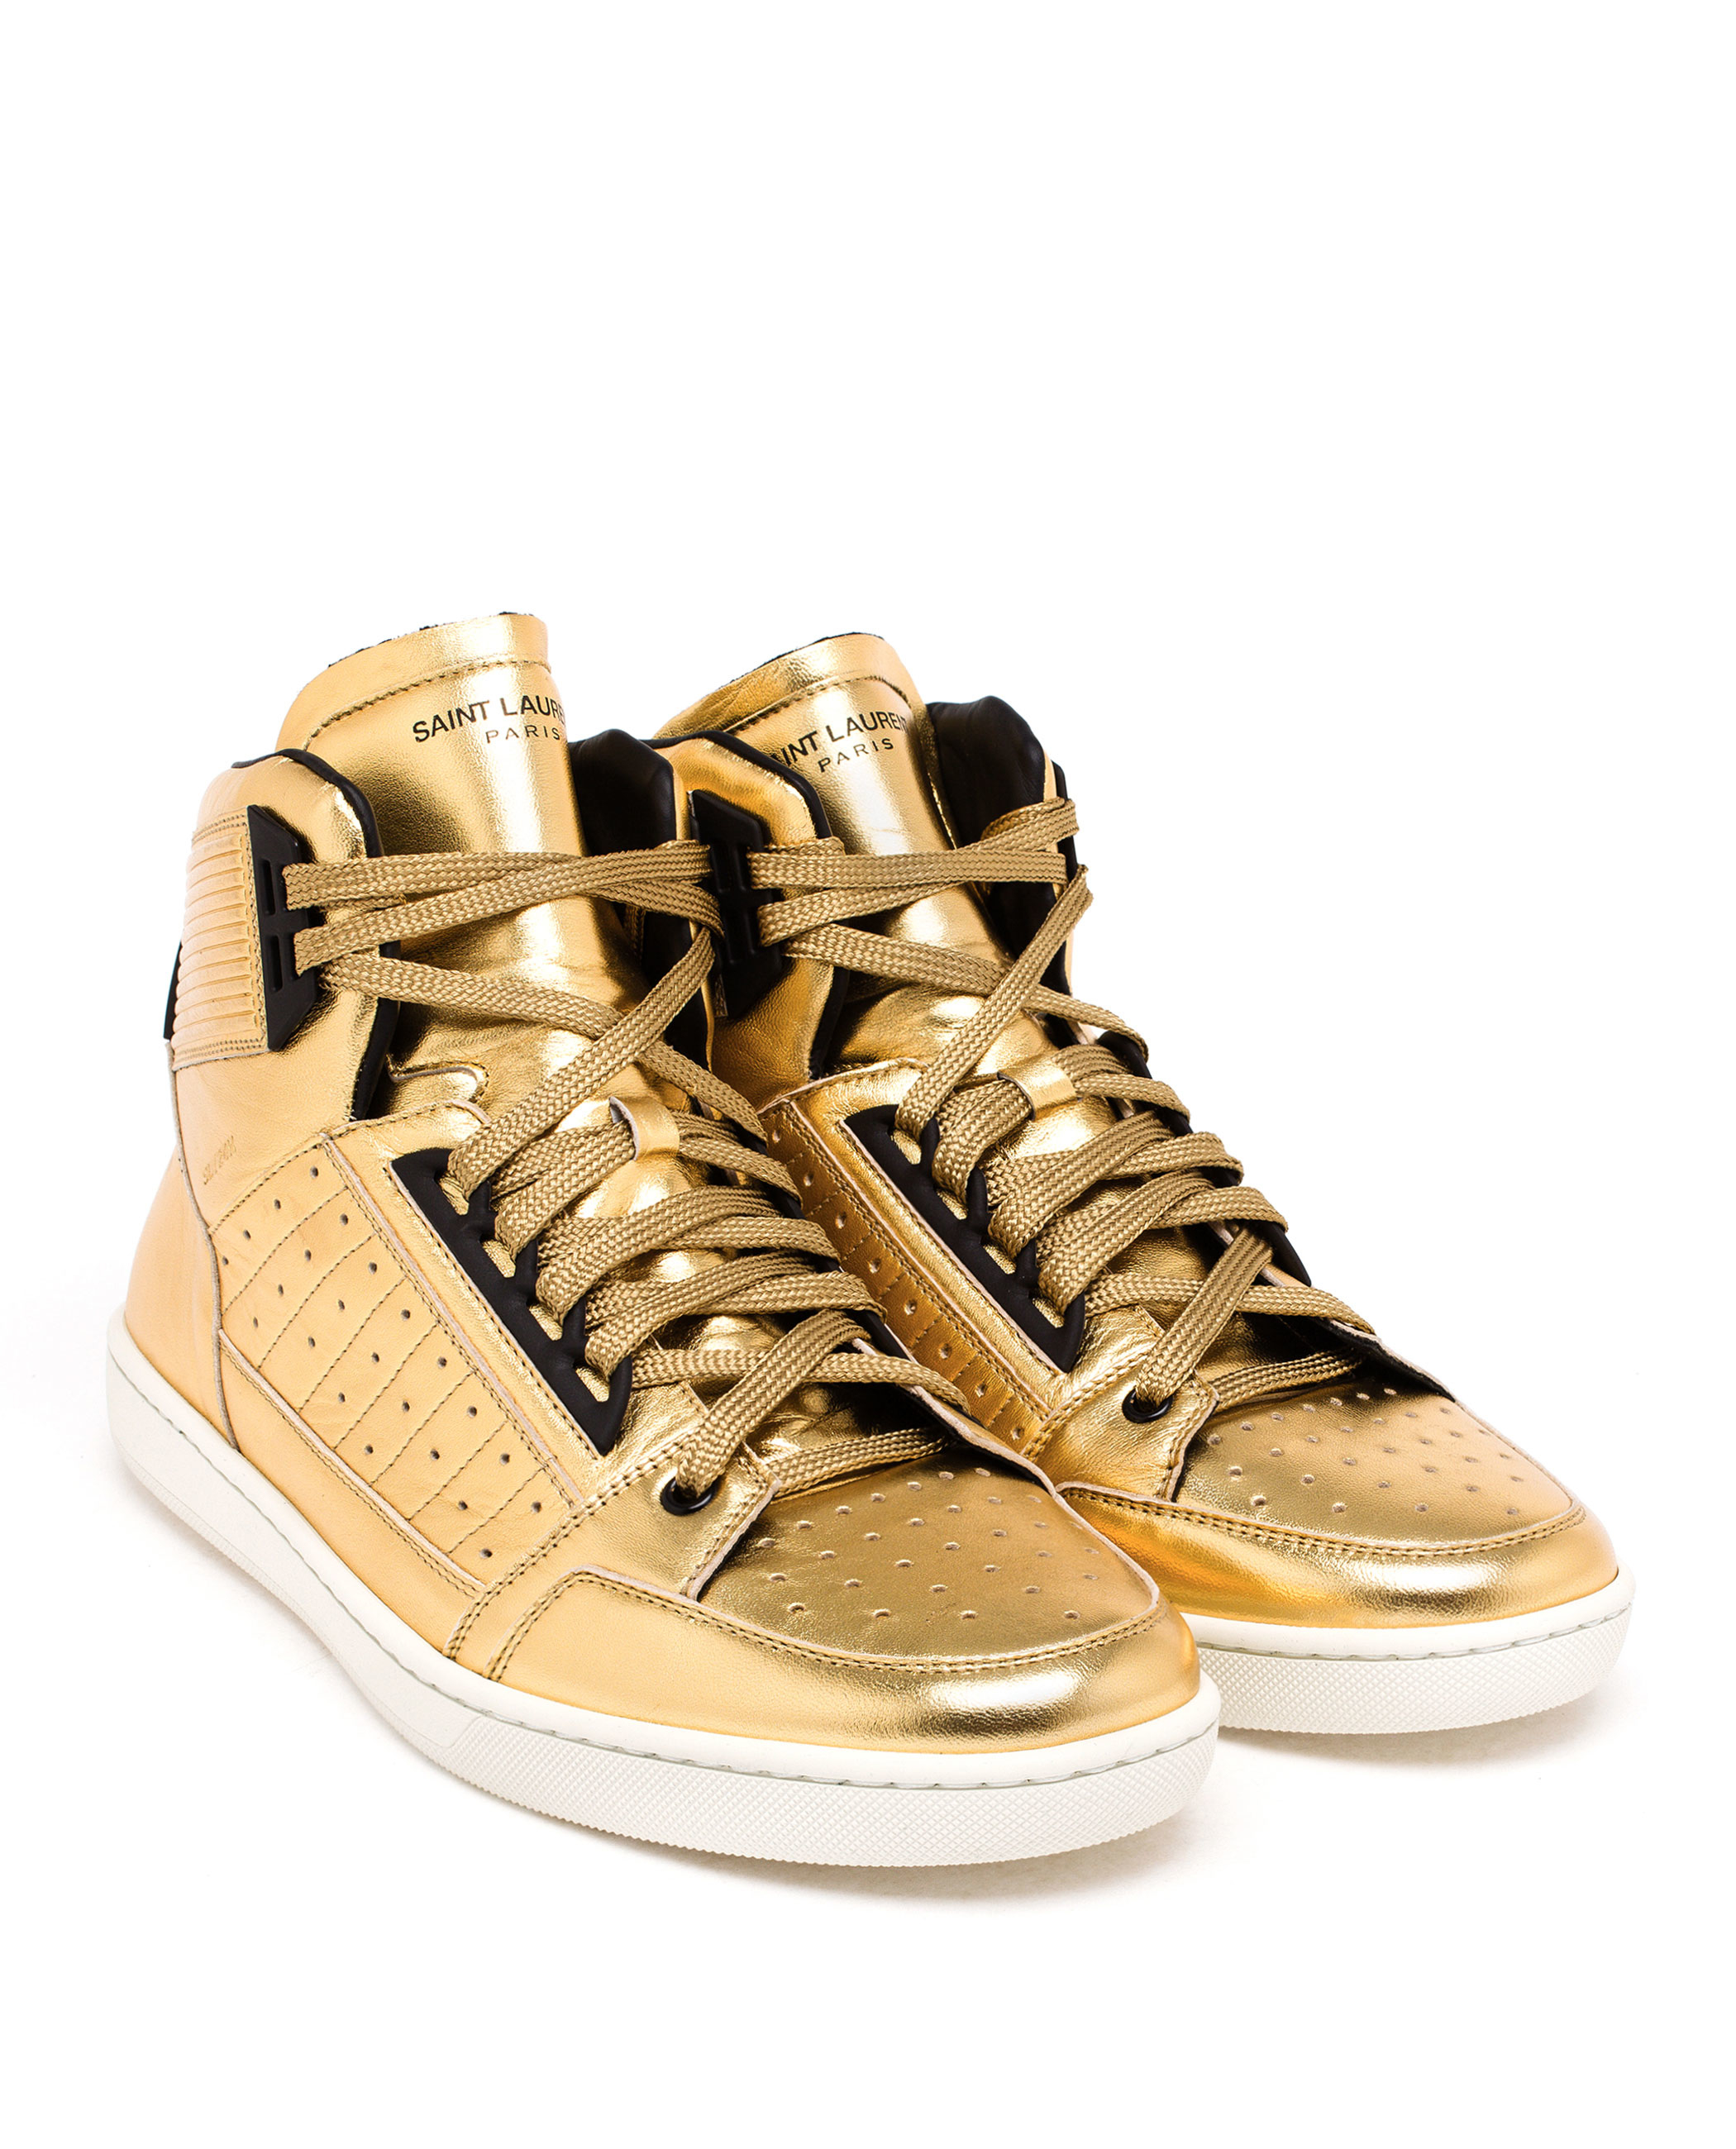 Saint Laurent Metallic Shoes Mens